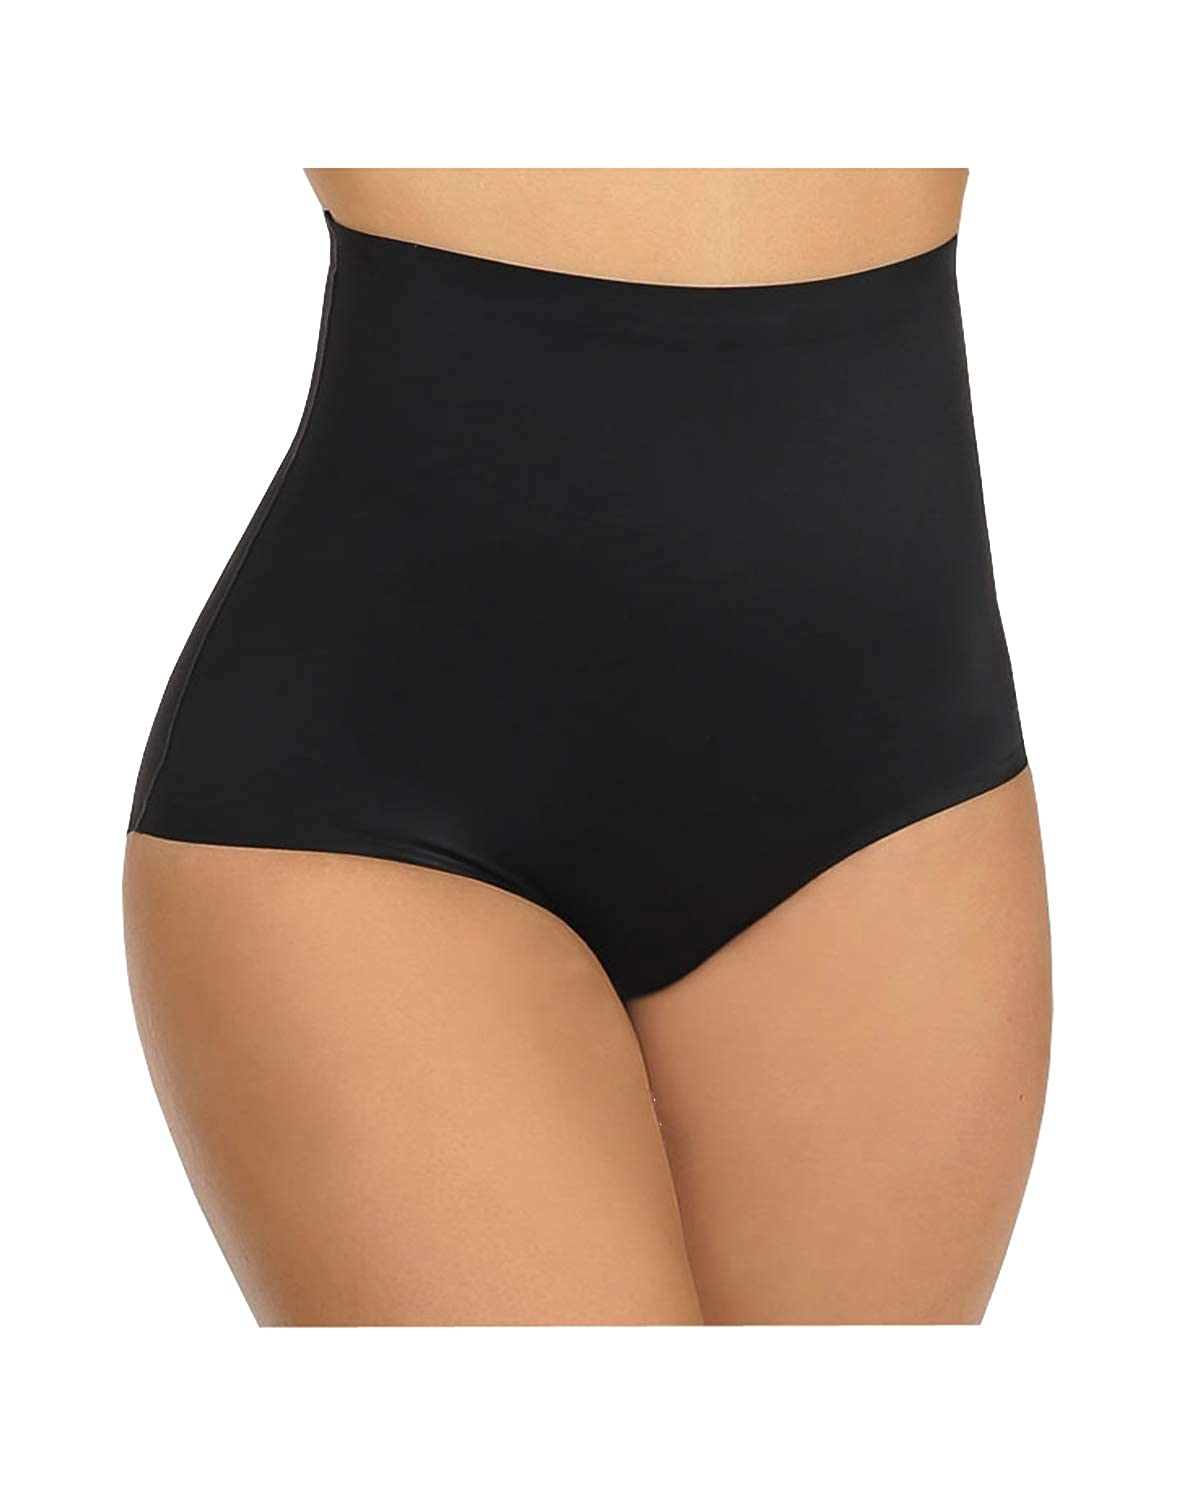 8a4e55574 This extra firm shapewear with double layer whittles your tummy